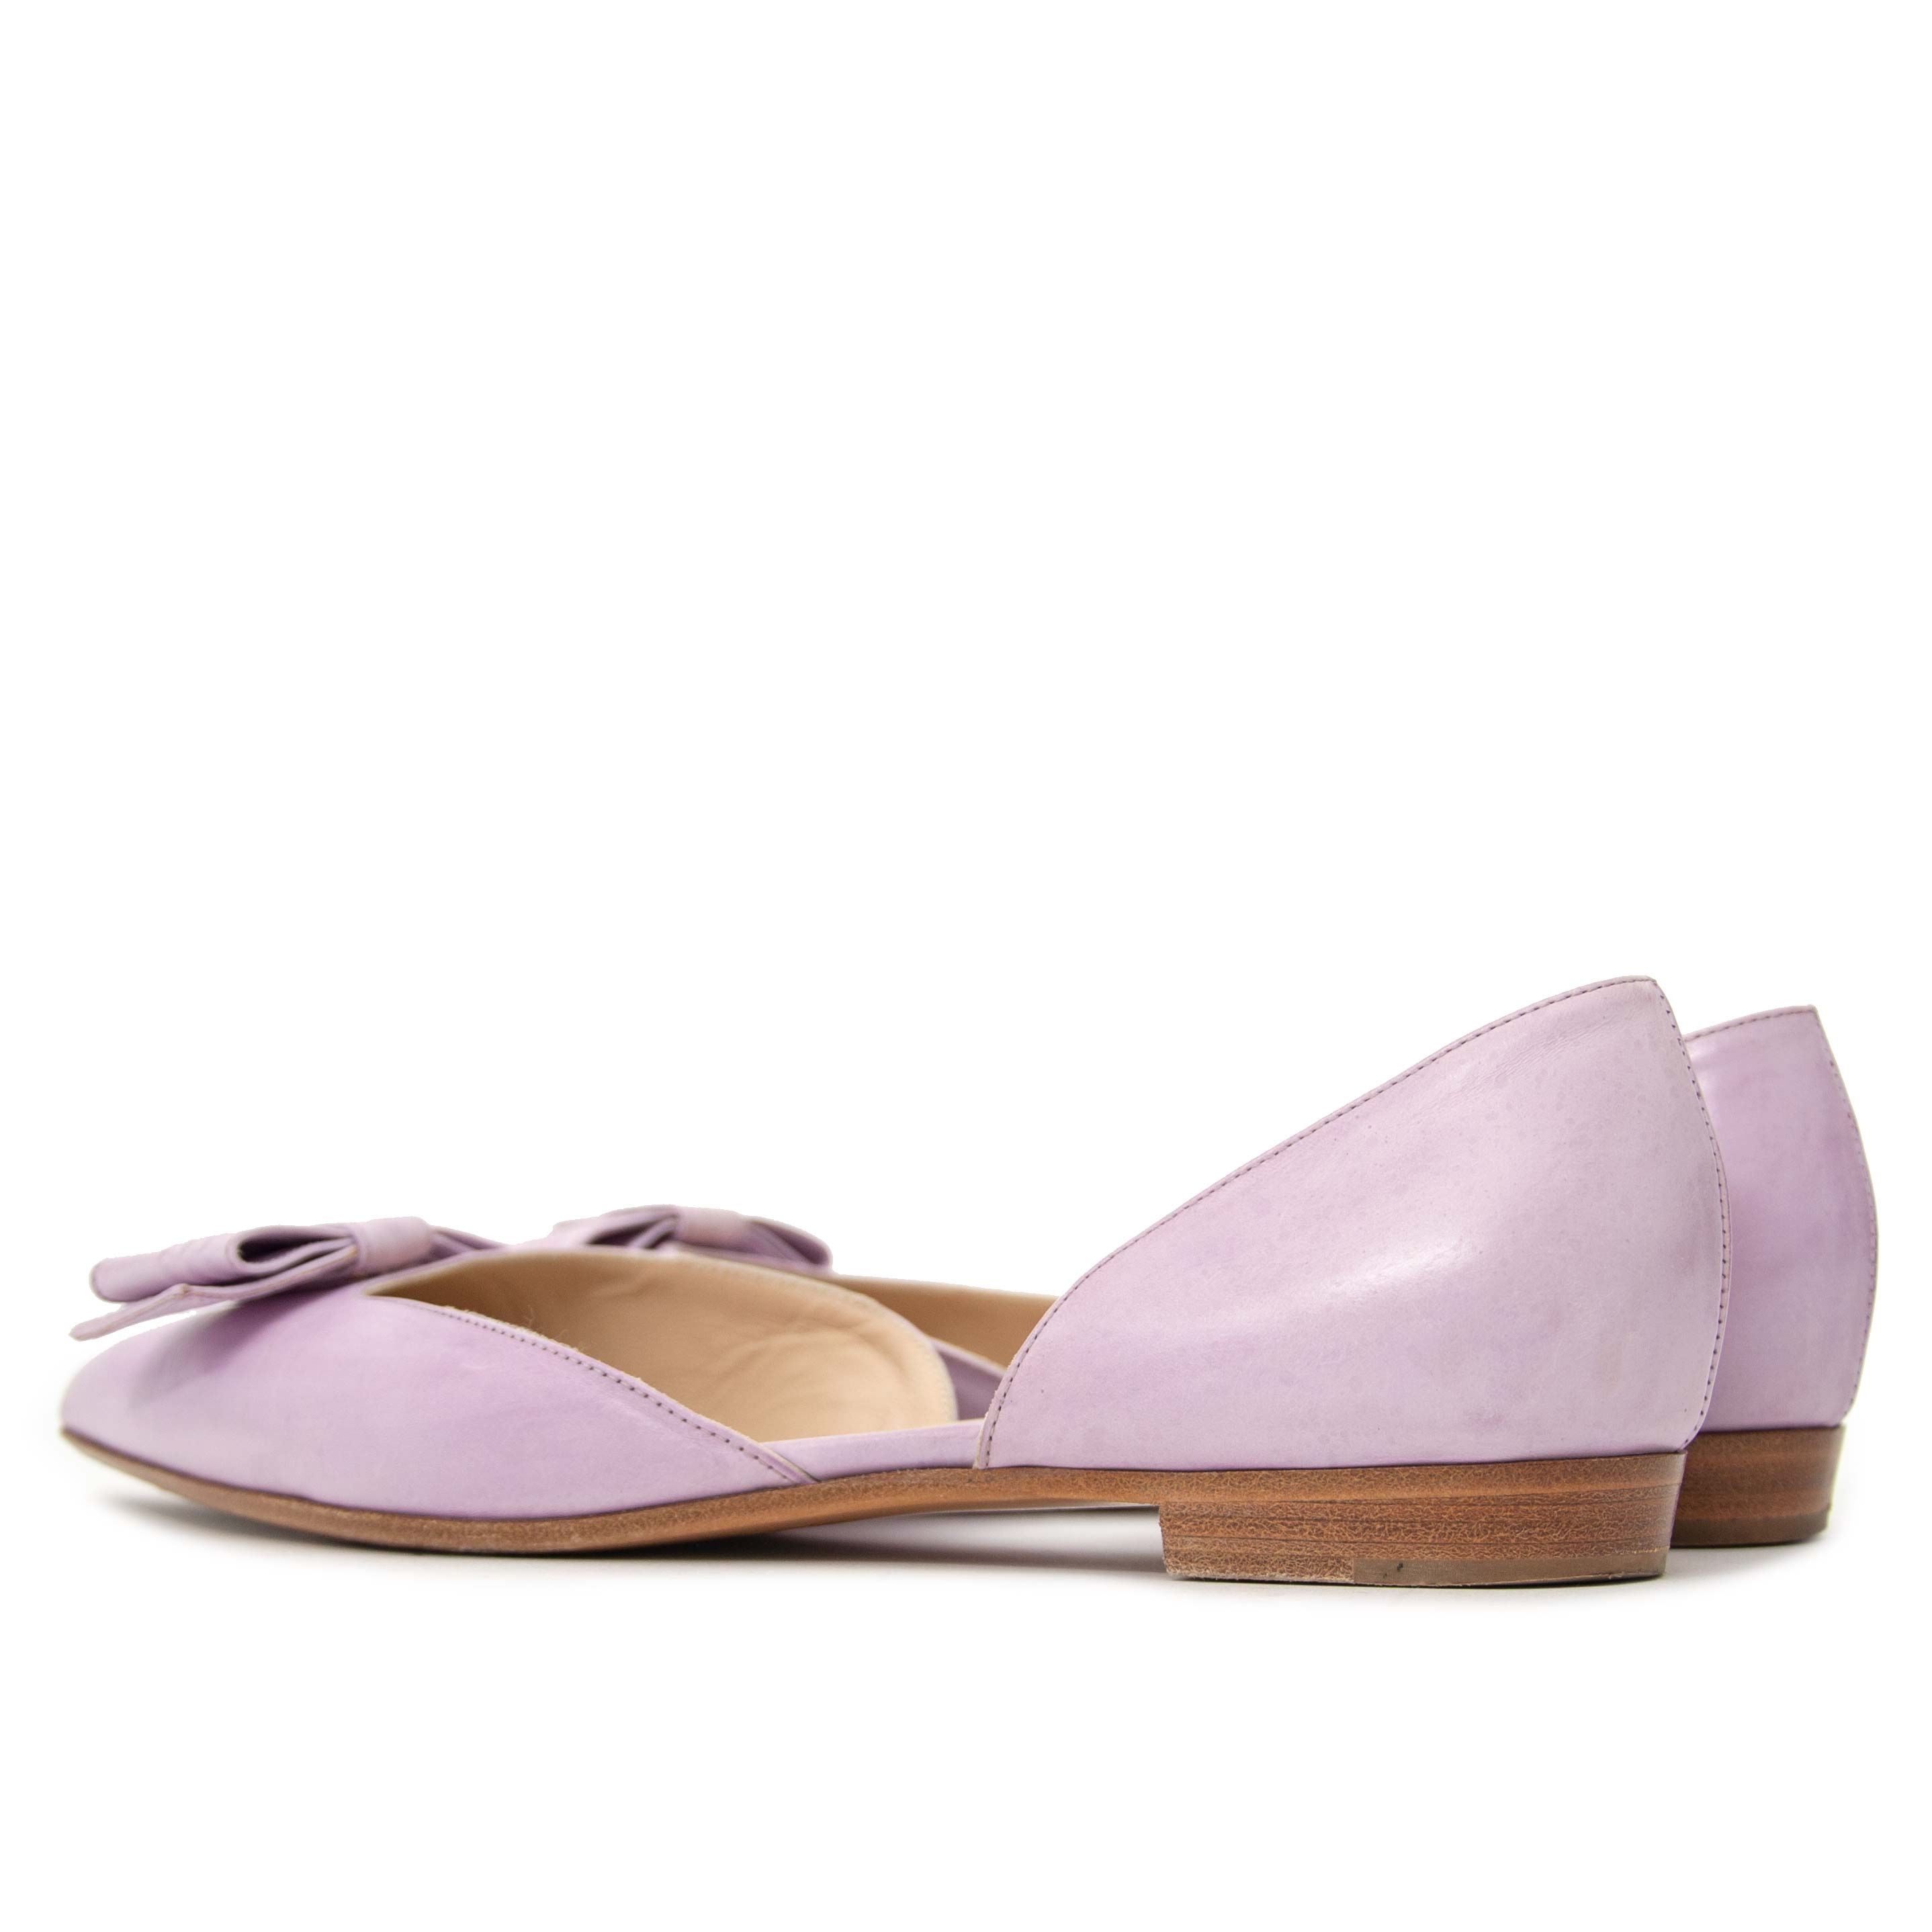 buy secondhand Fratelli Rossetti Lila Patent Leather Ballerina Flats by labellov